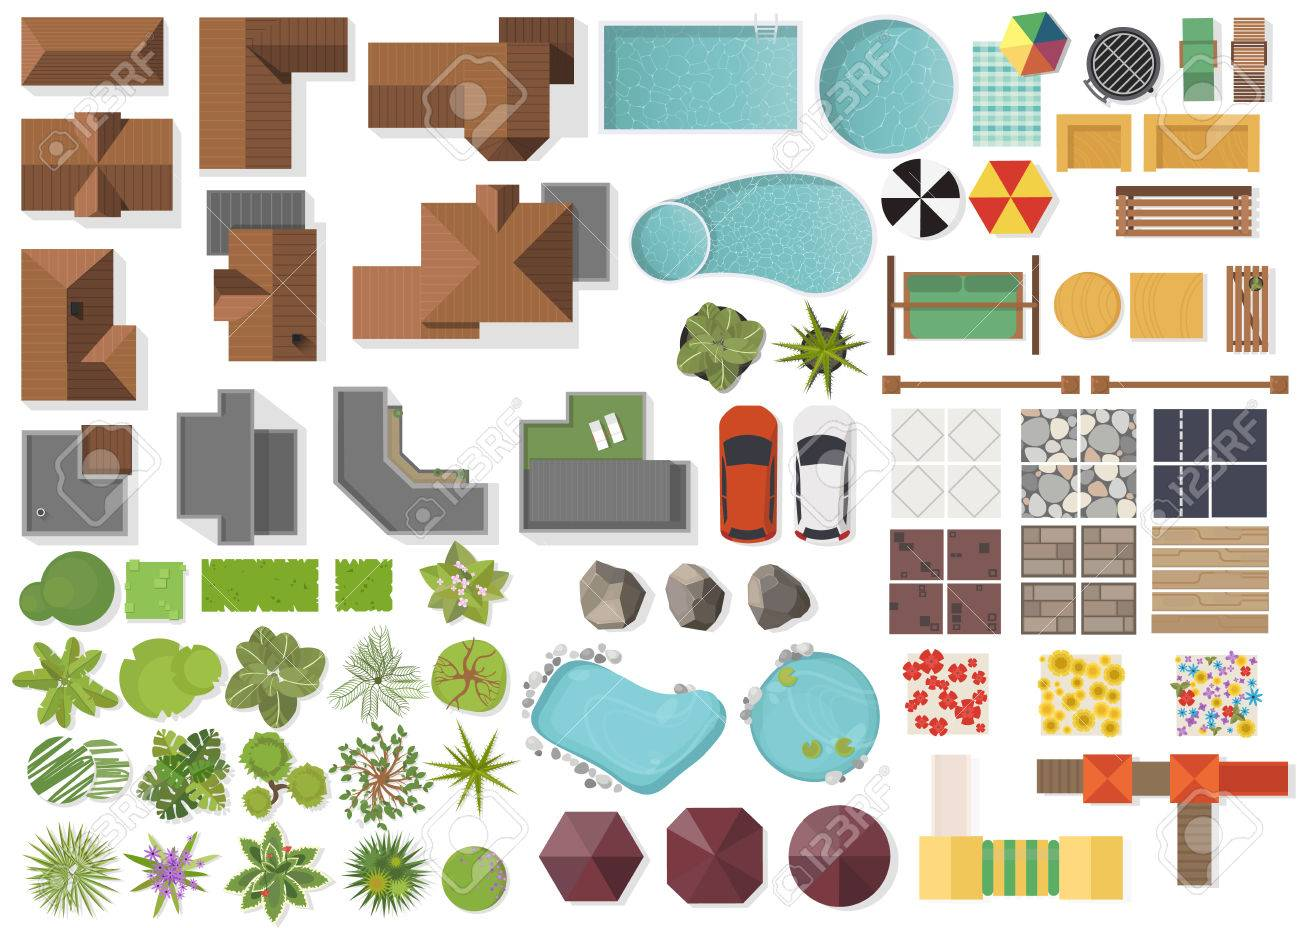 Set Landscape elements, top view.House, garden, tree, lake, swimming pools, bench, table. Landscaping symbols set isolated on white - 81733275